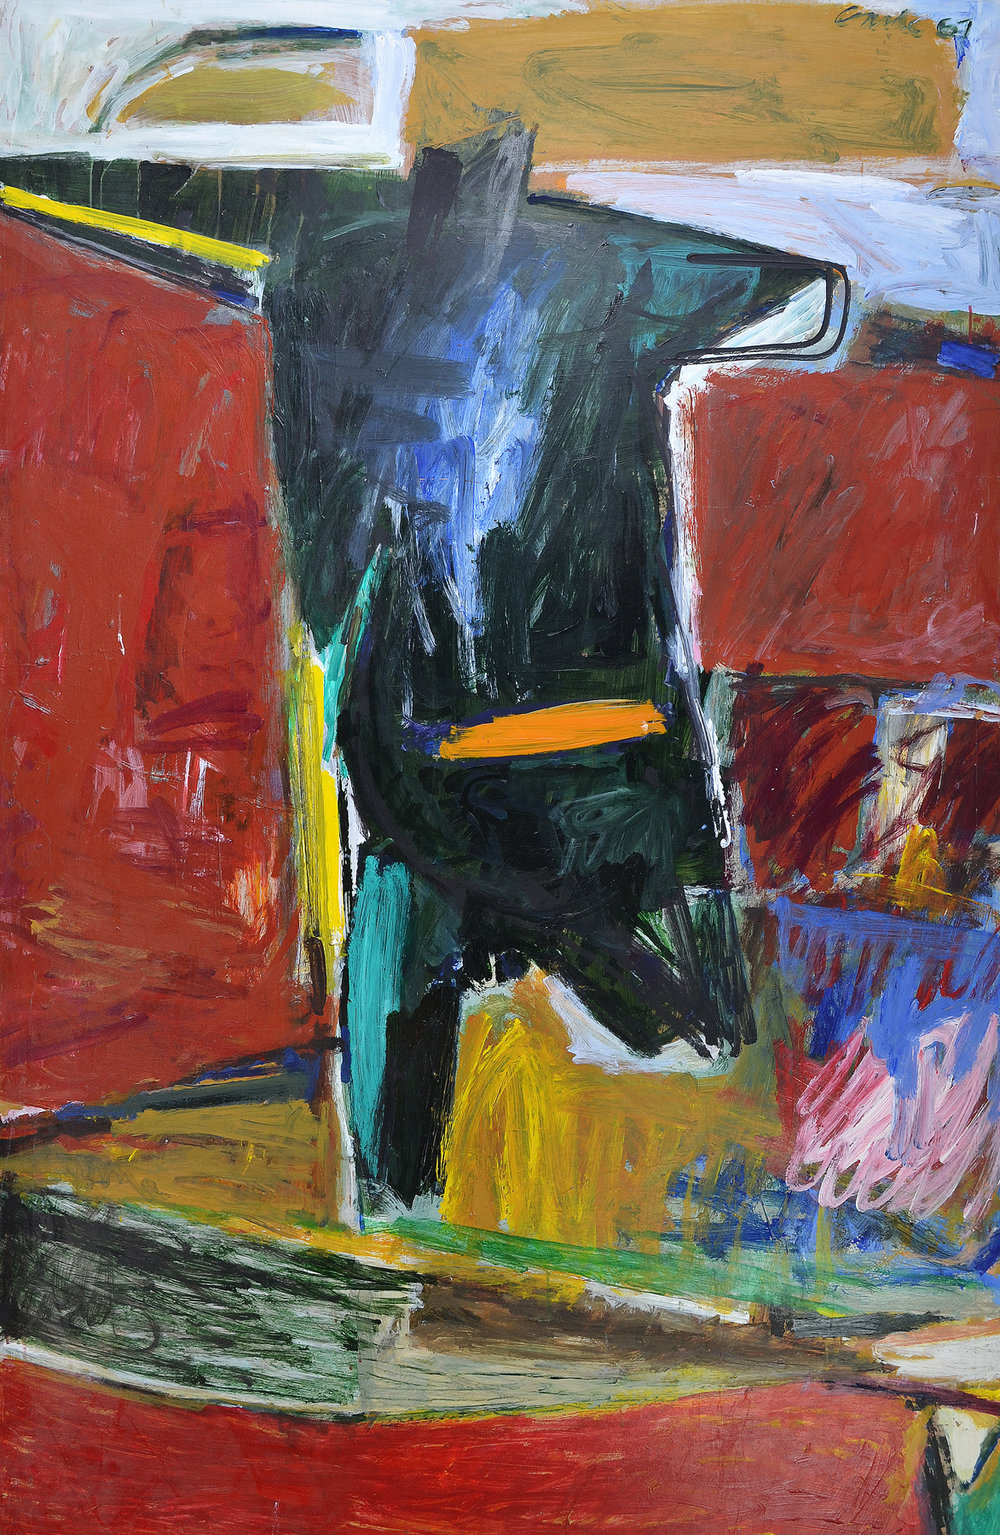 Lurch , 1967. Oil on hardboard (masonite), 72 x 48 in. (183 x 122 cm.)